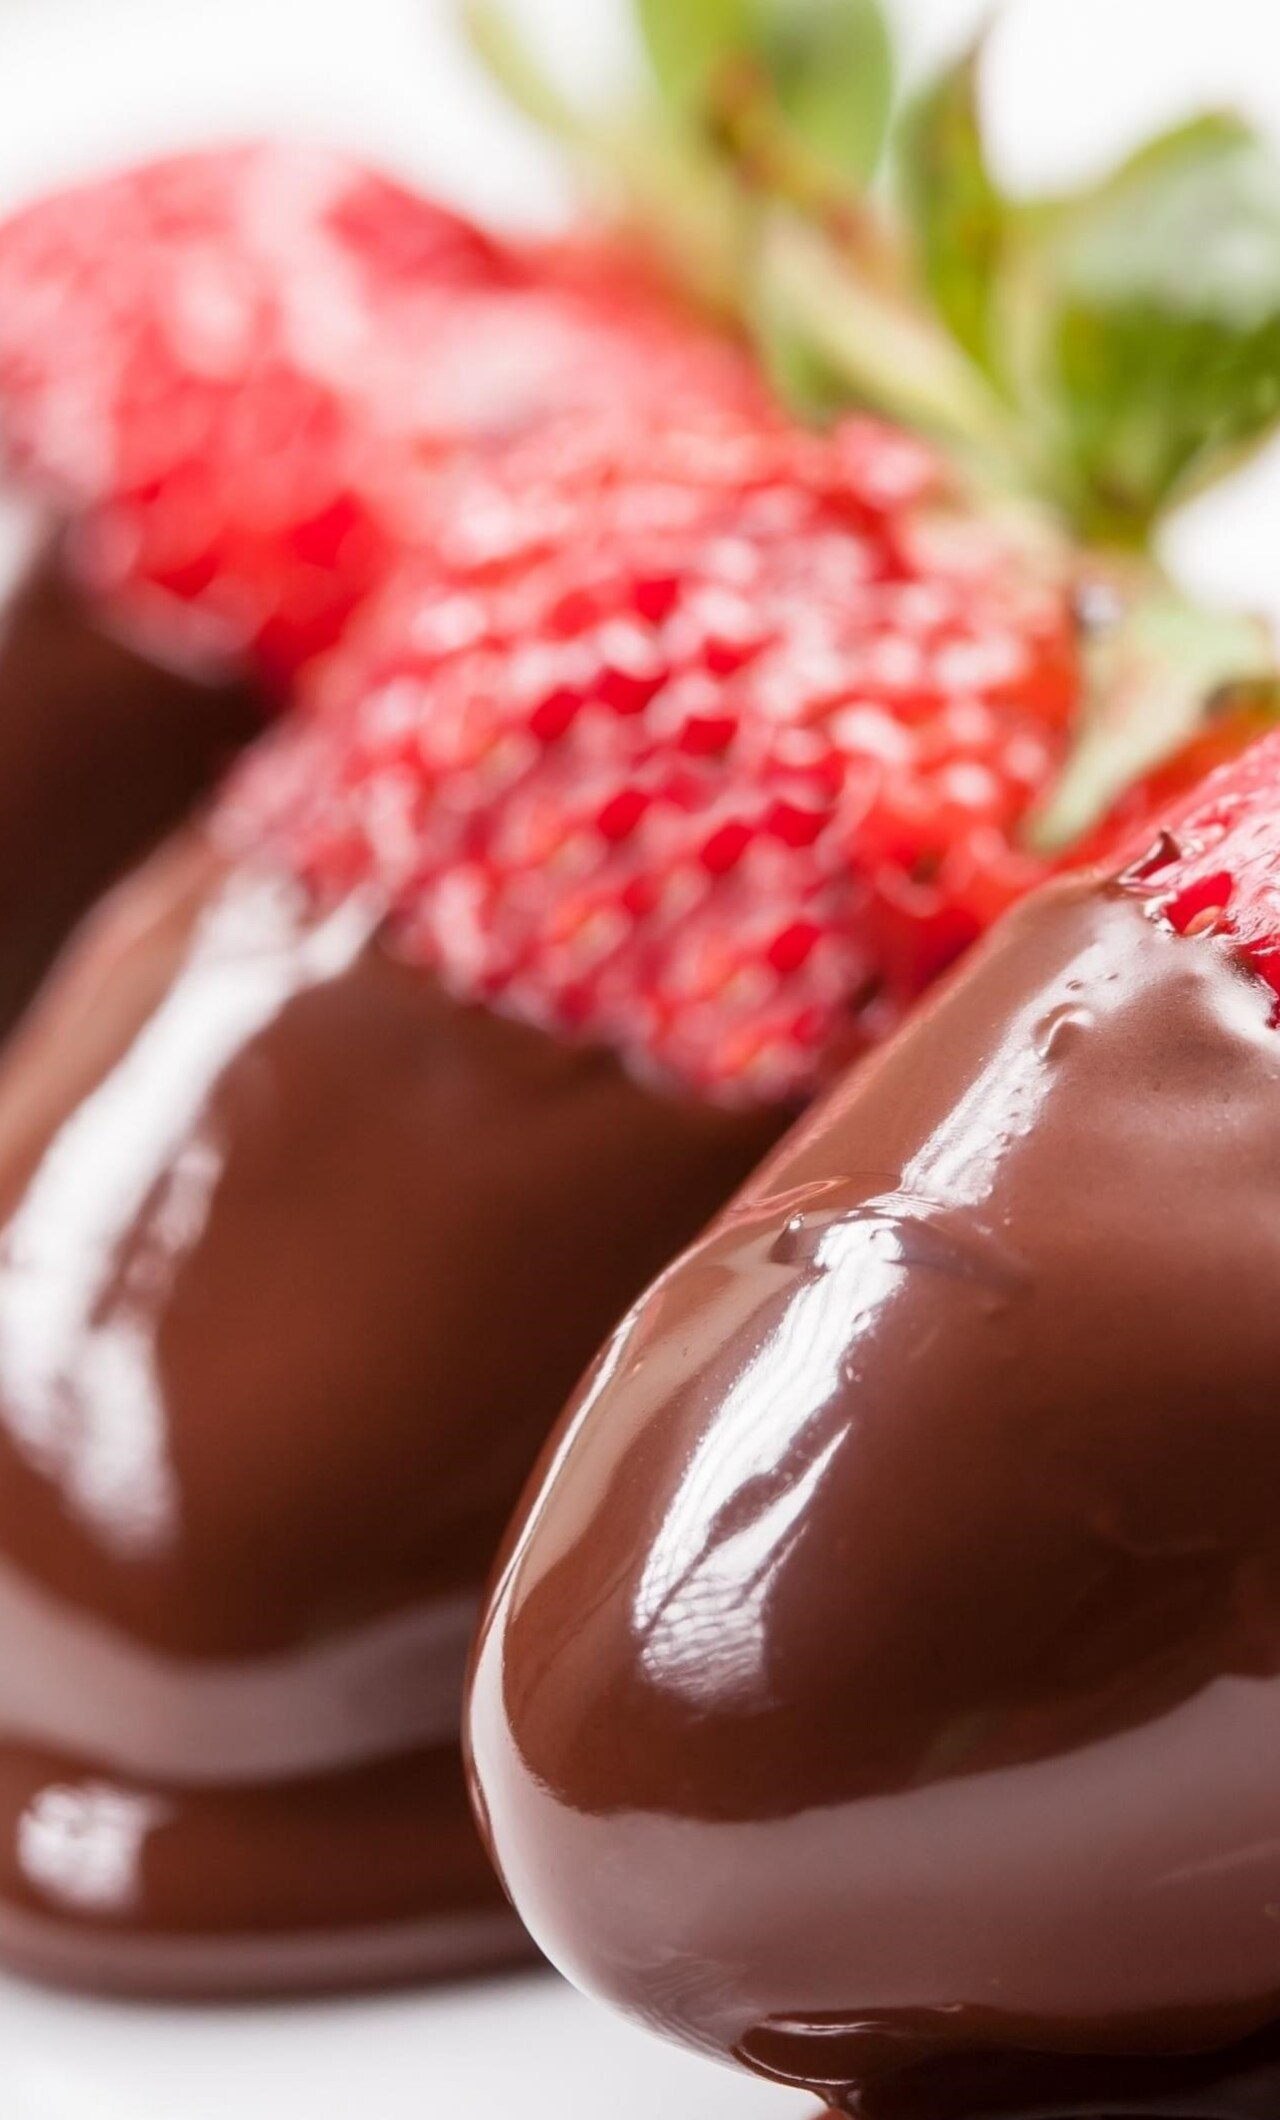 strawberry-chocolate-dessert.jpg